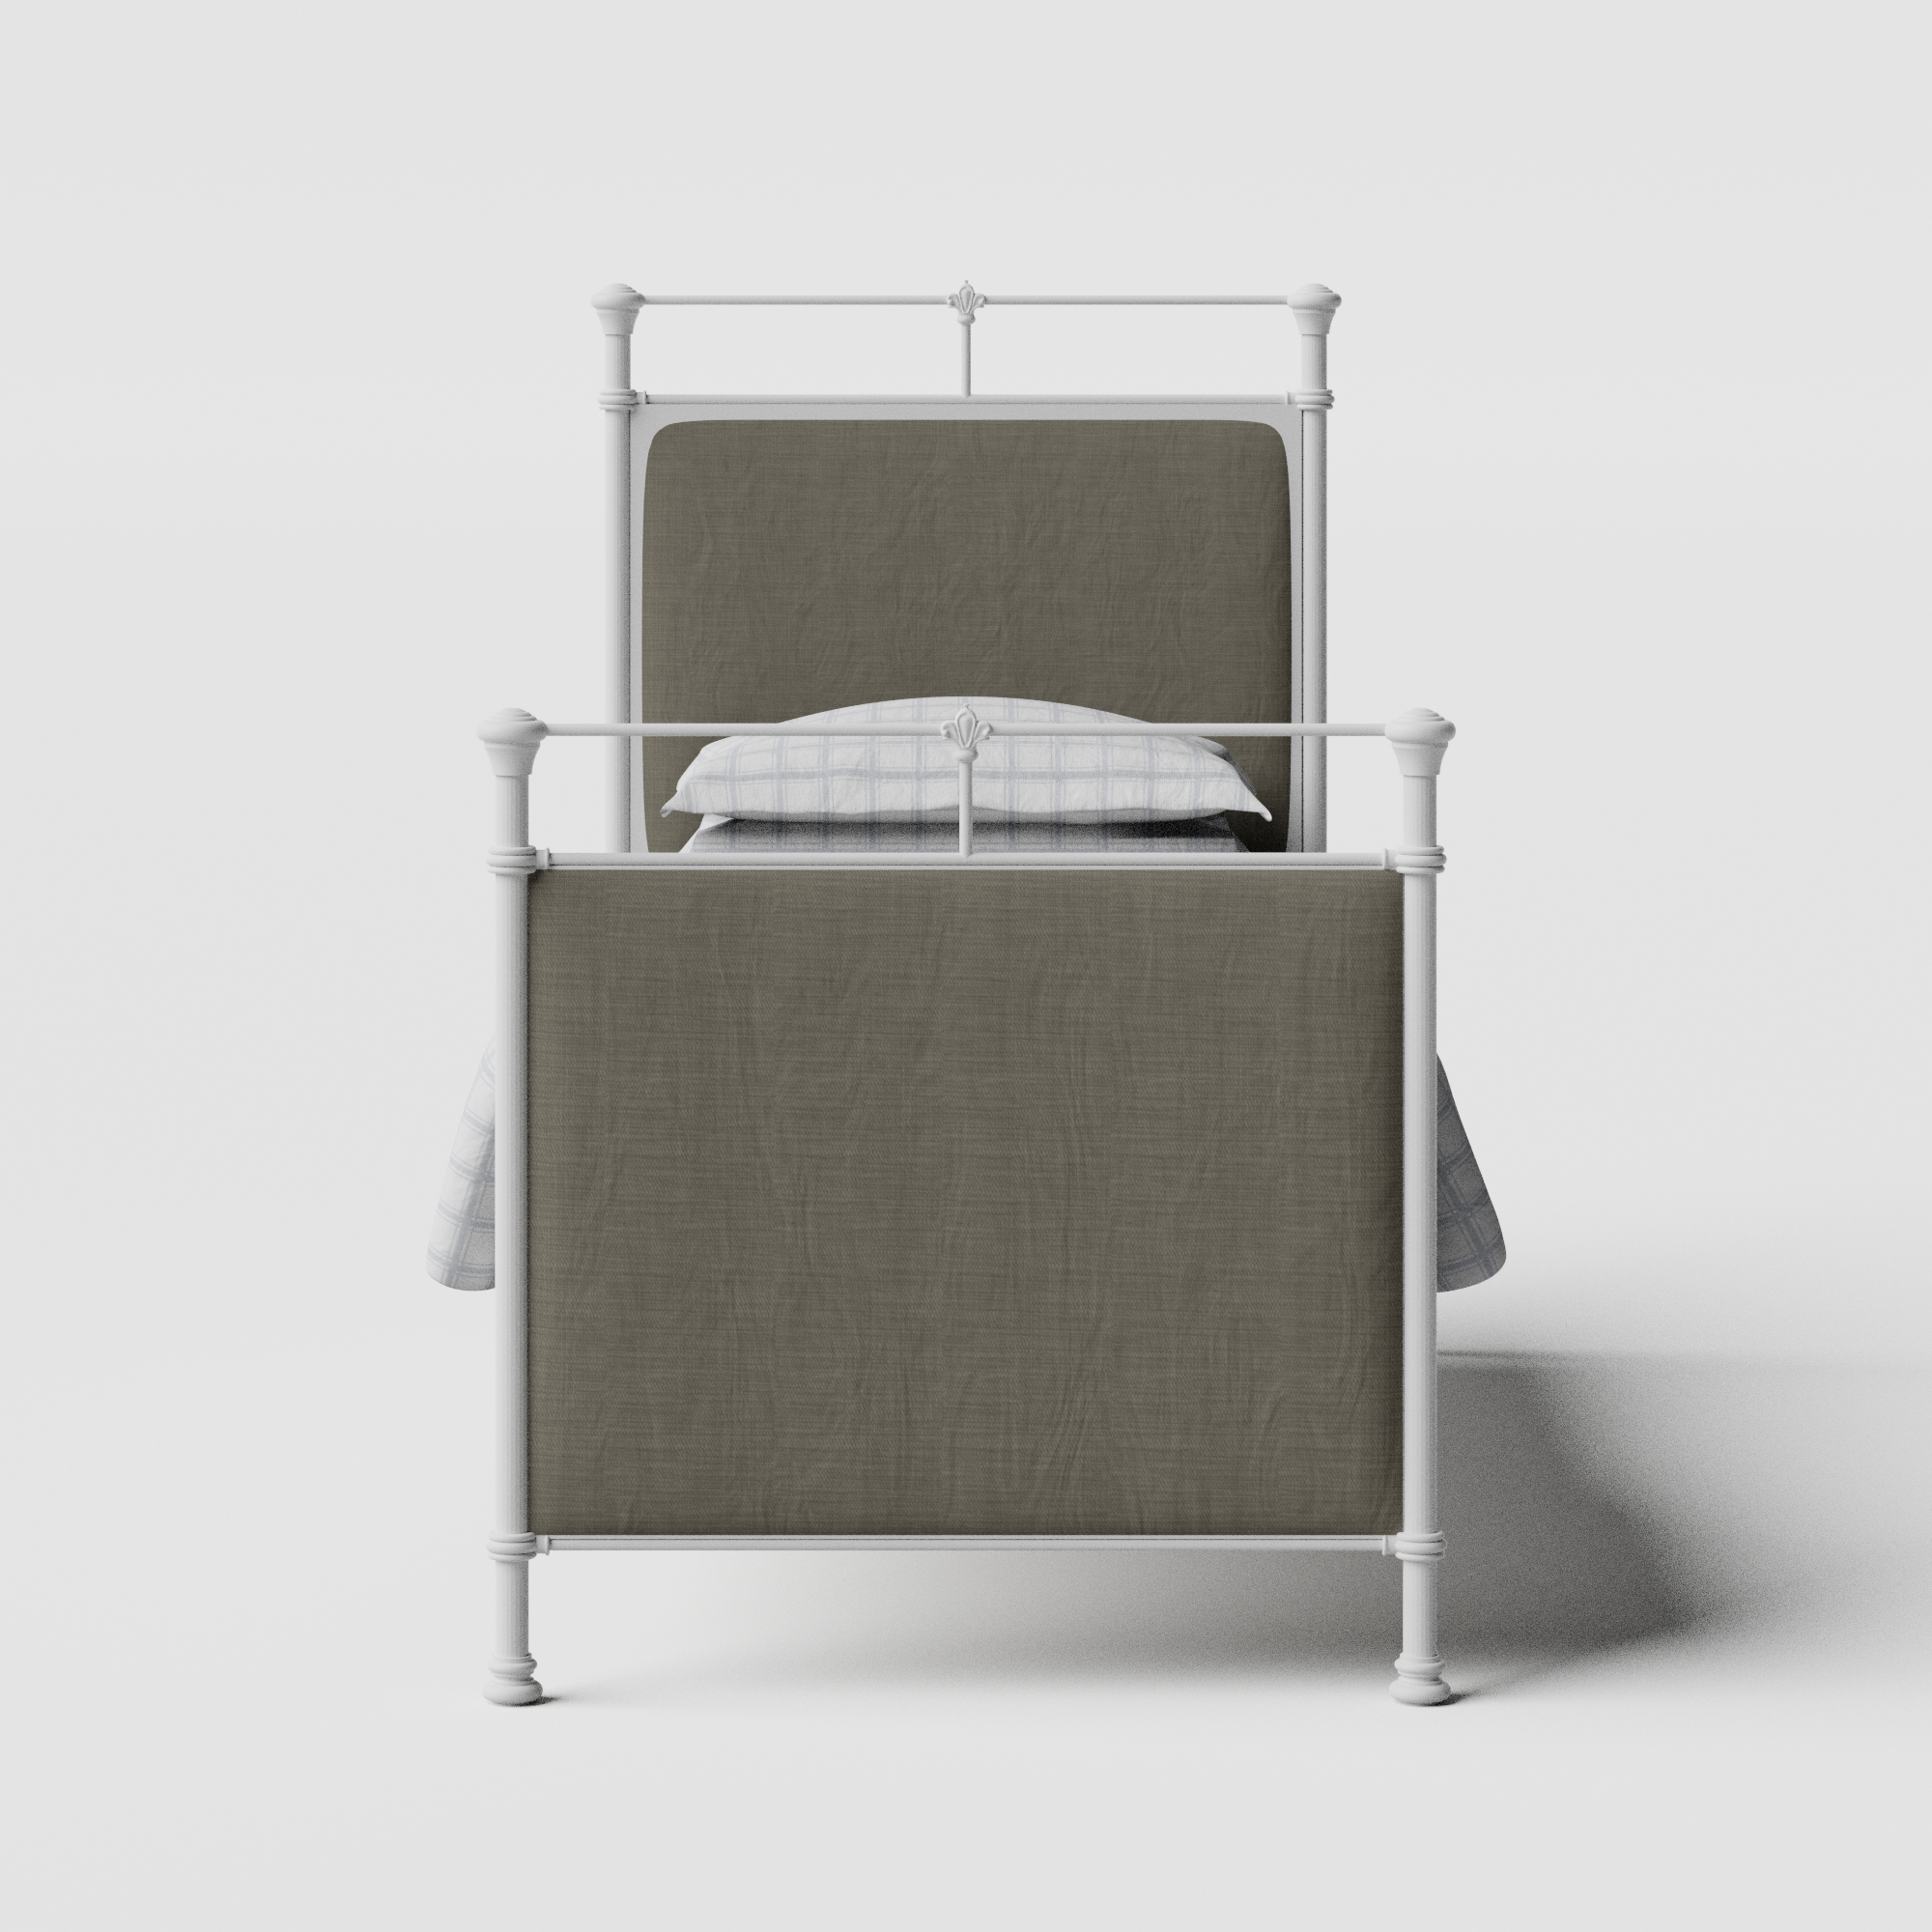 Lille iron/metal single bed in white